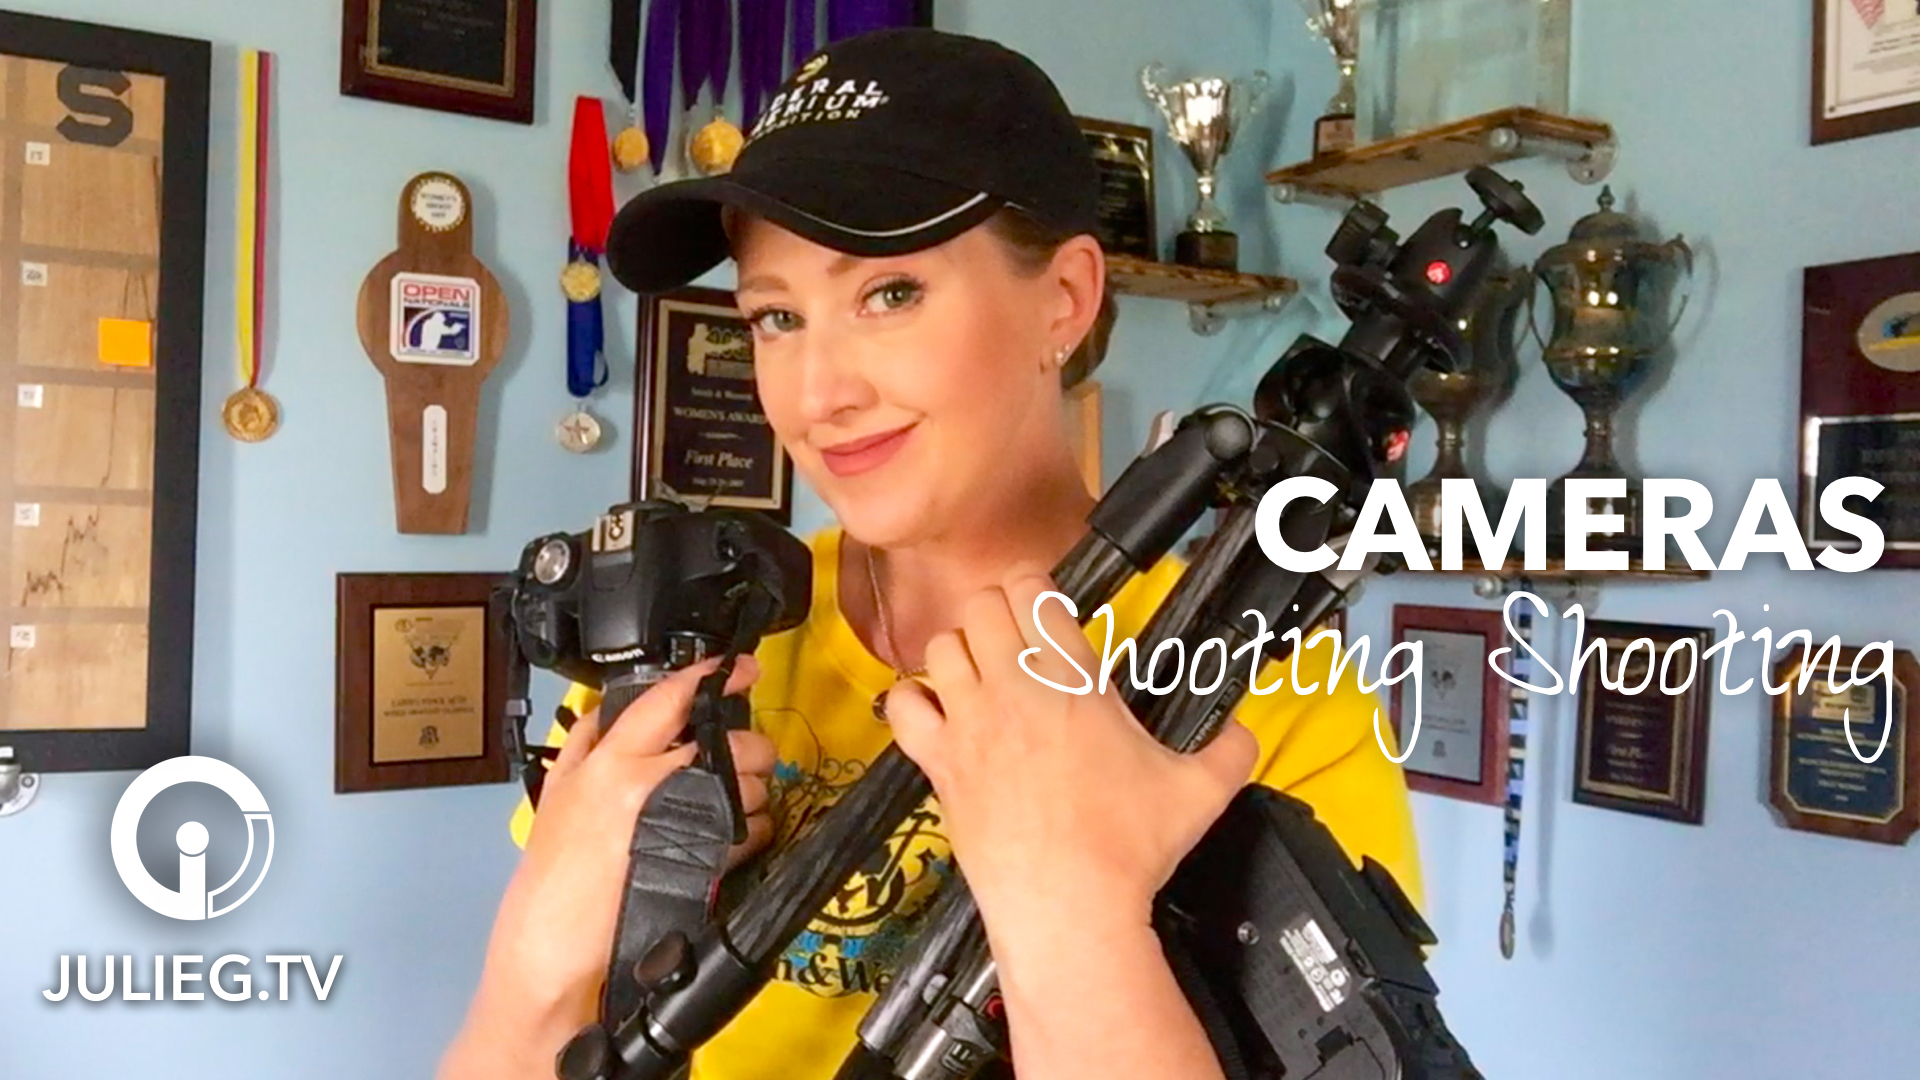 How I Shoot Shooting: Cameras | JulieG.TV #sssveda #veda